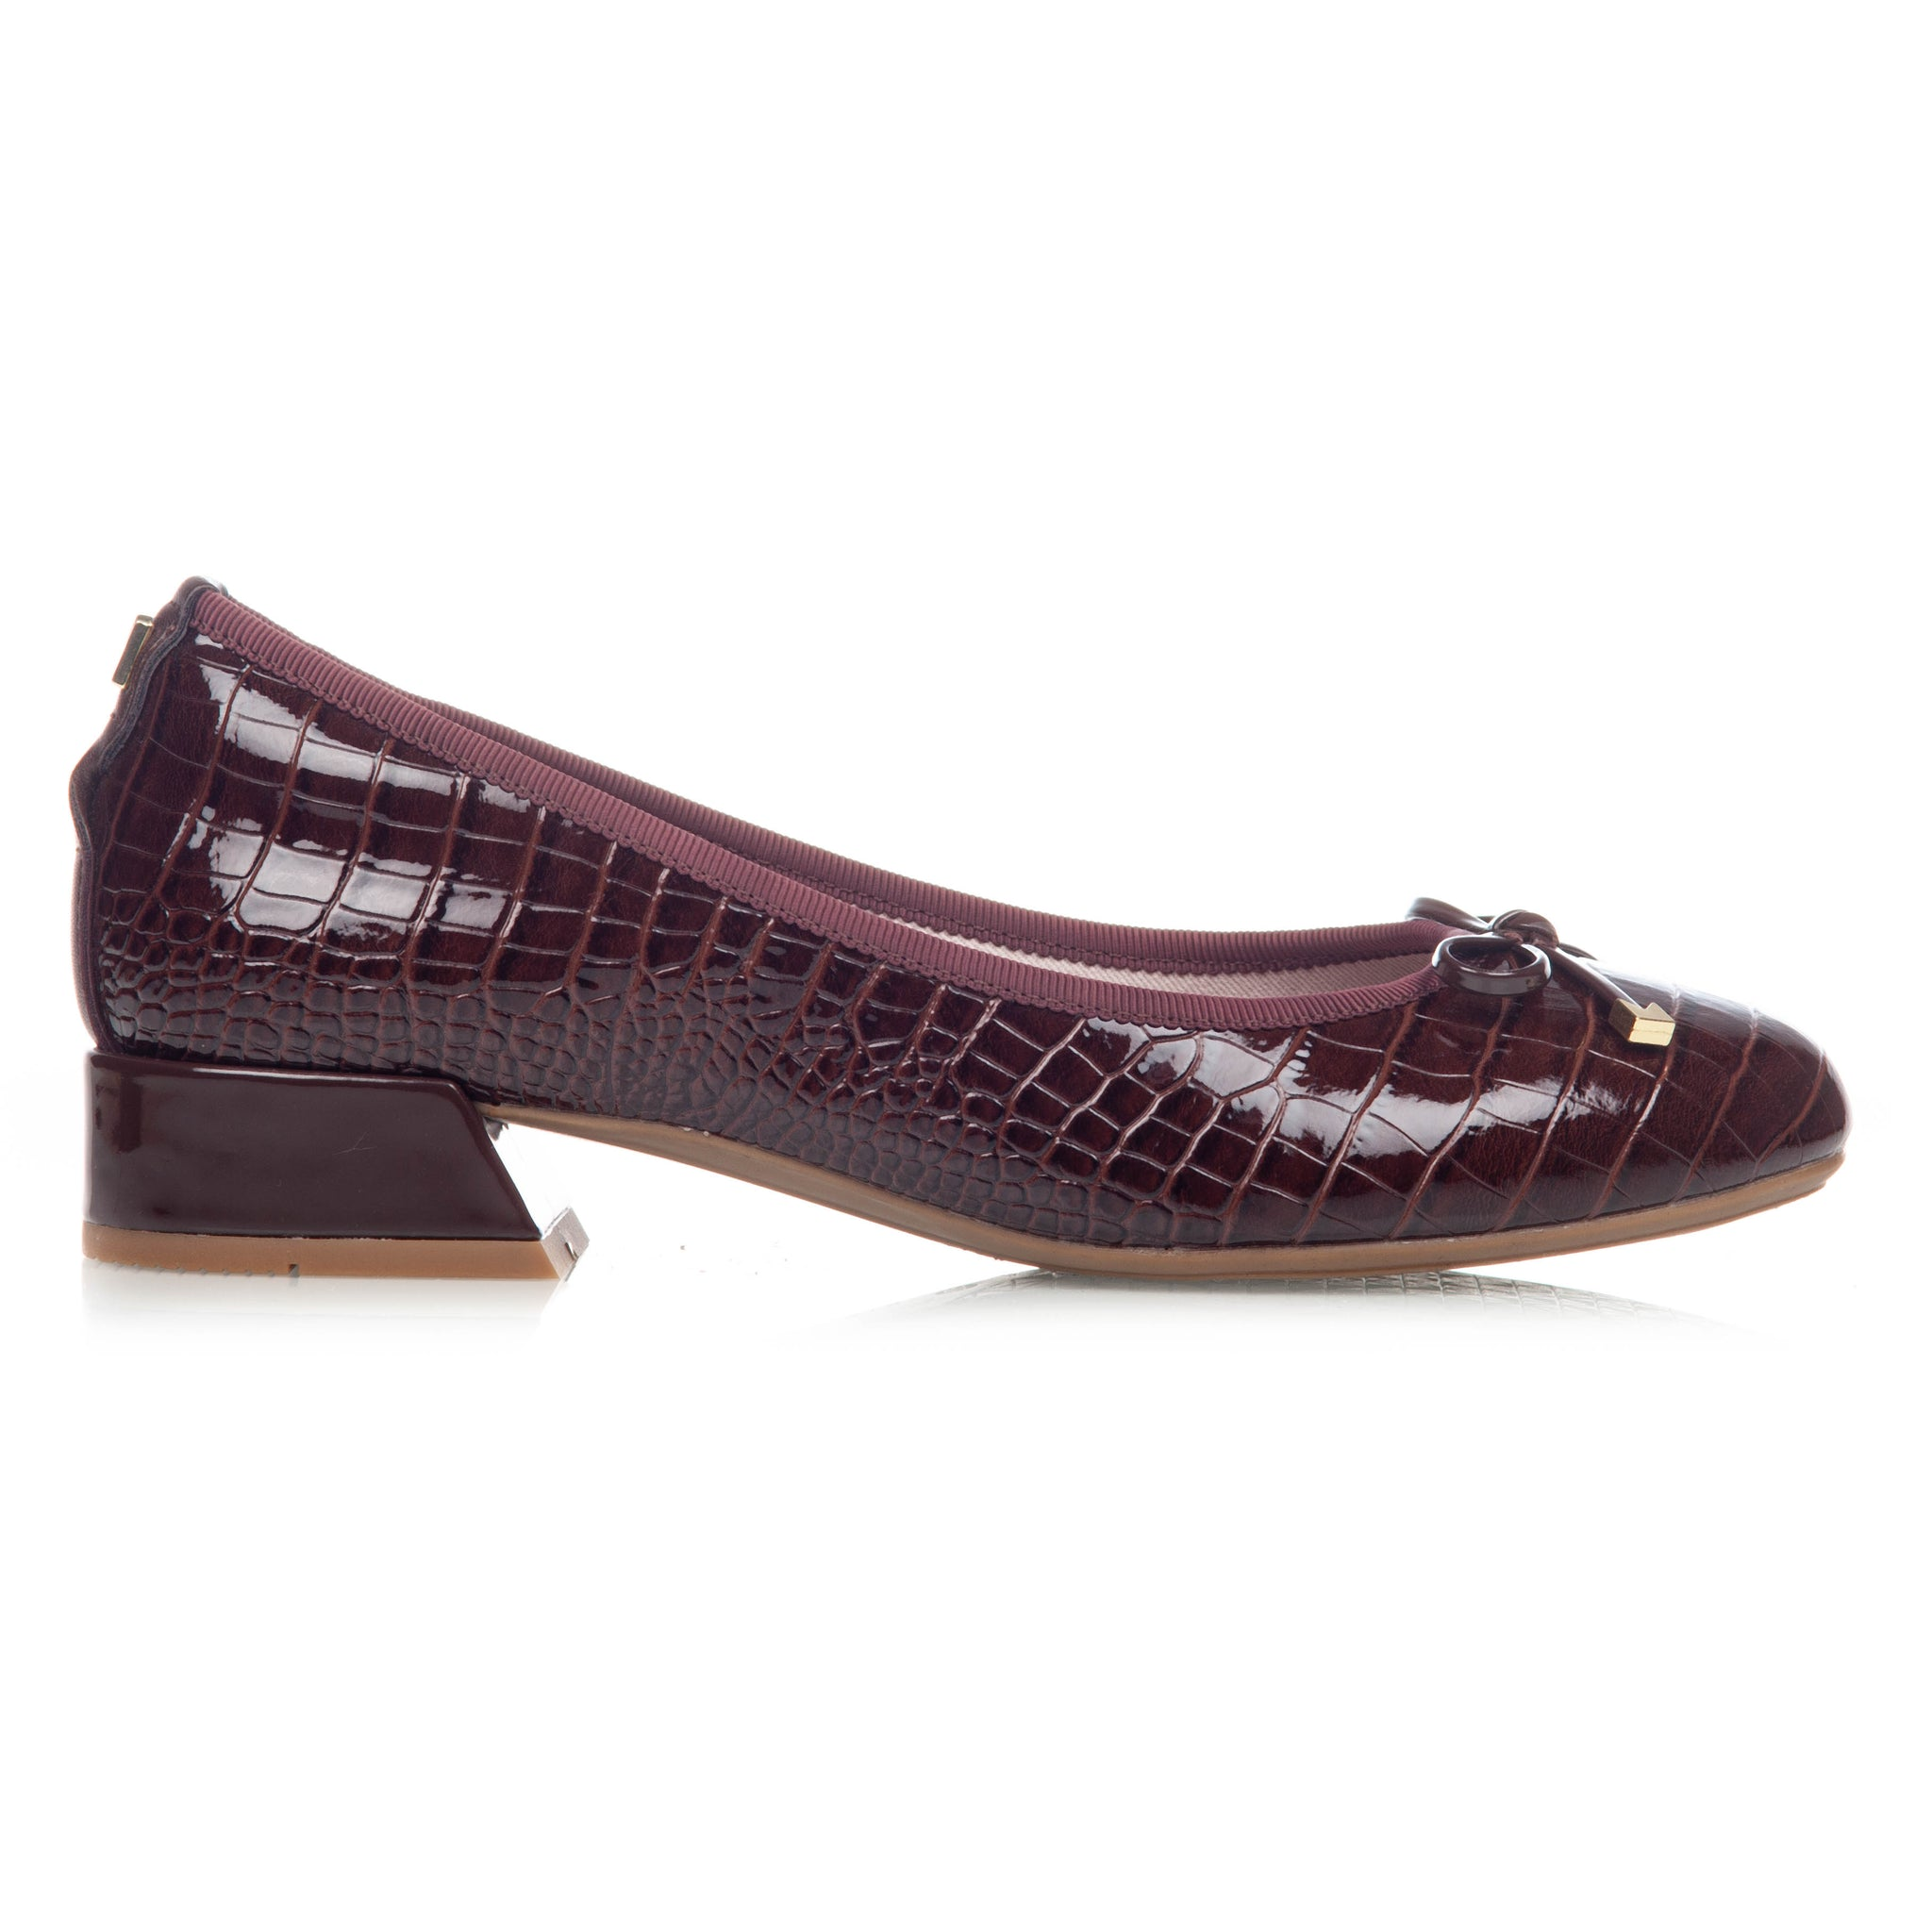 SERENA BROWN PATENT CROC